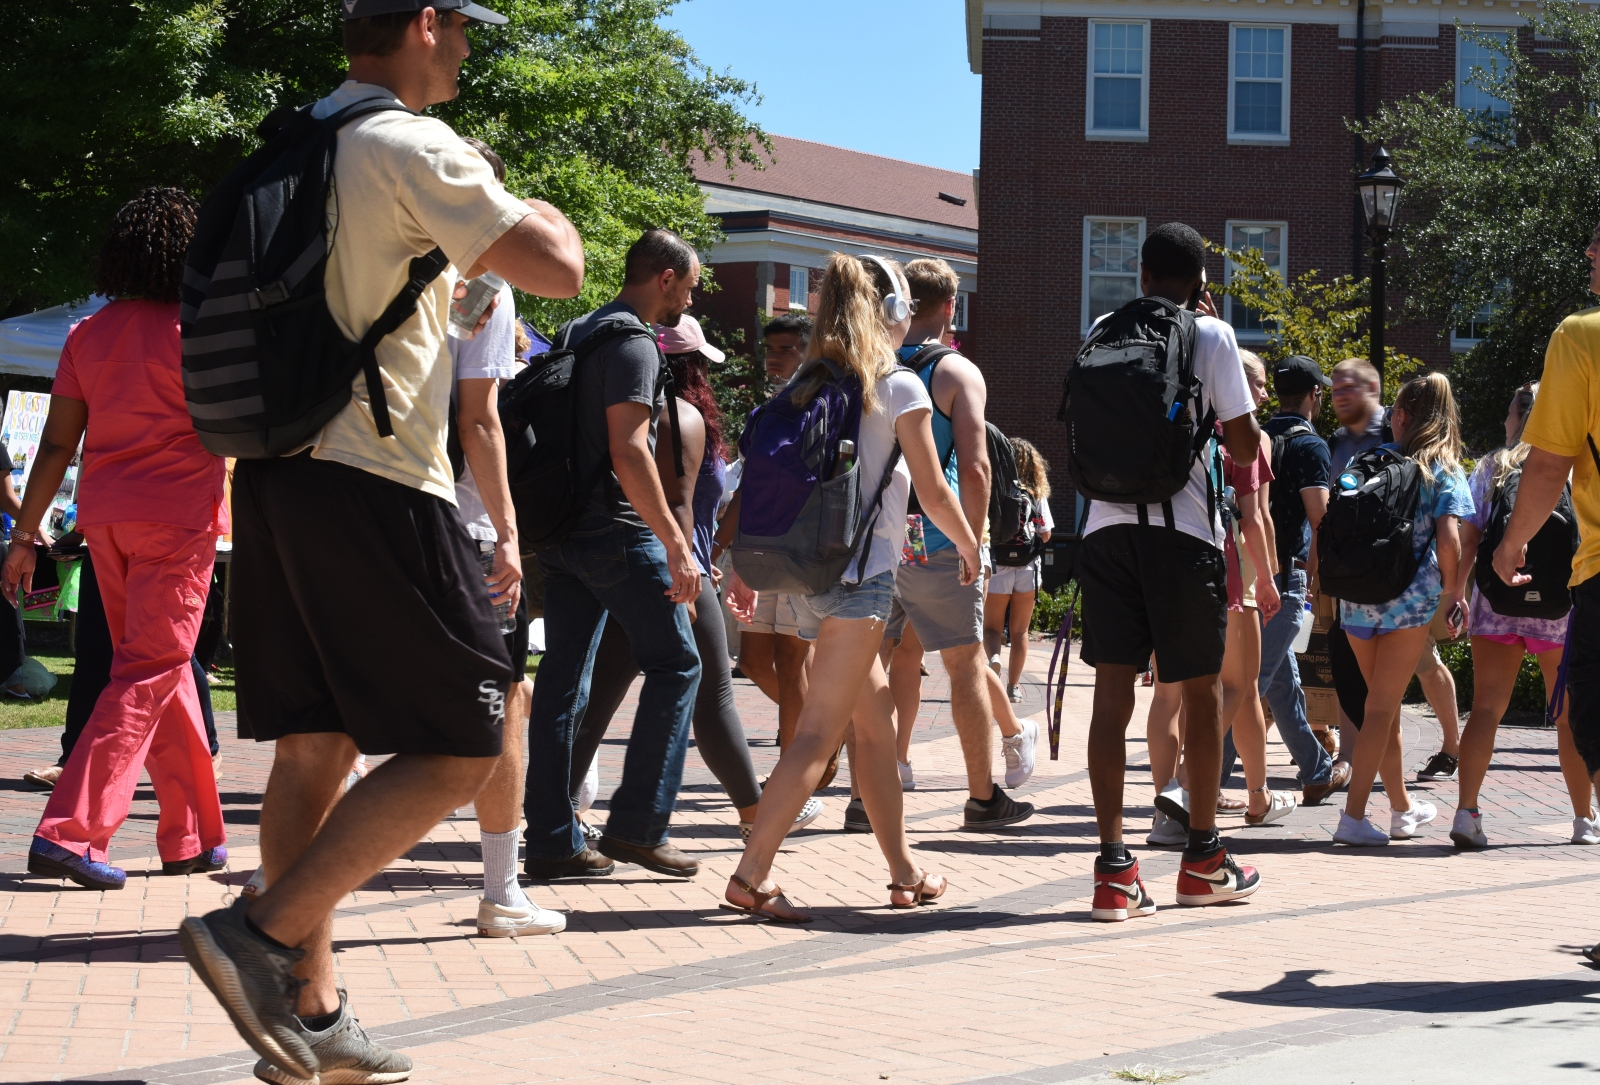 Group of students walking into school, into class